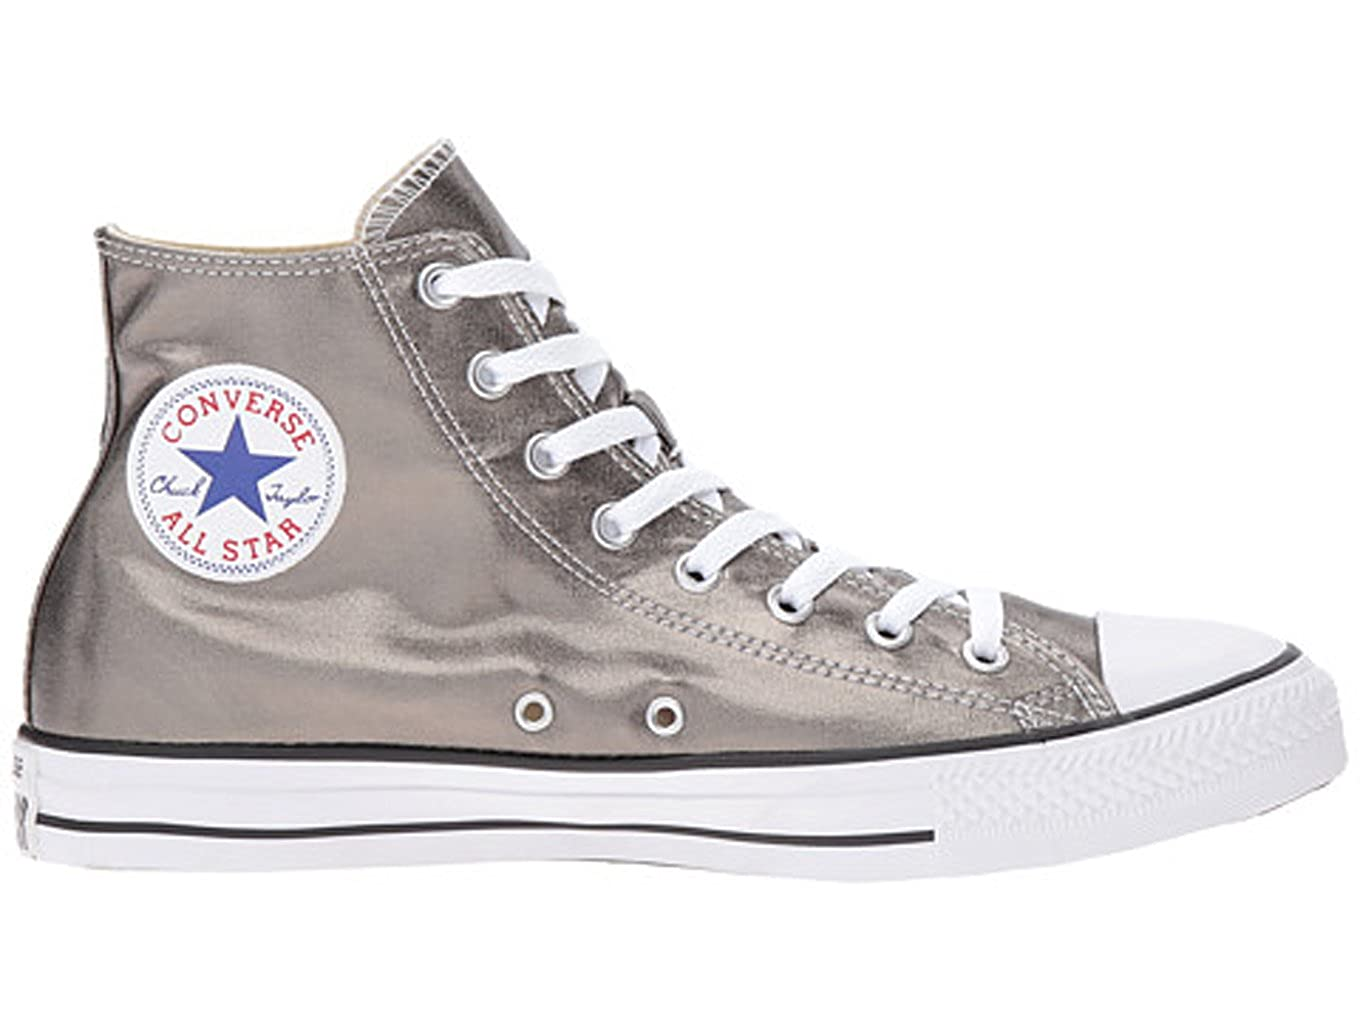 2converse all star metallic